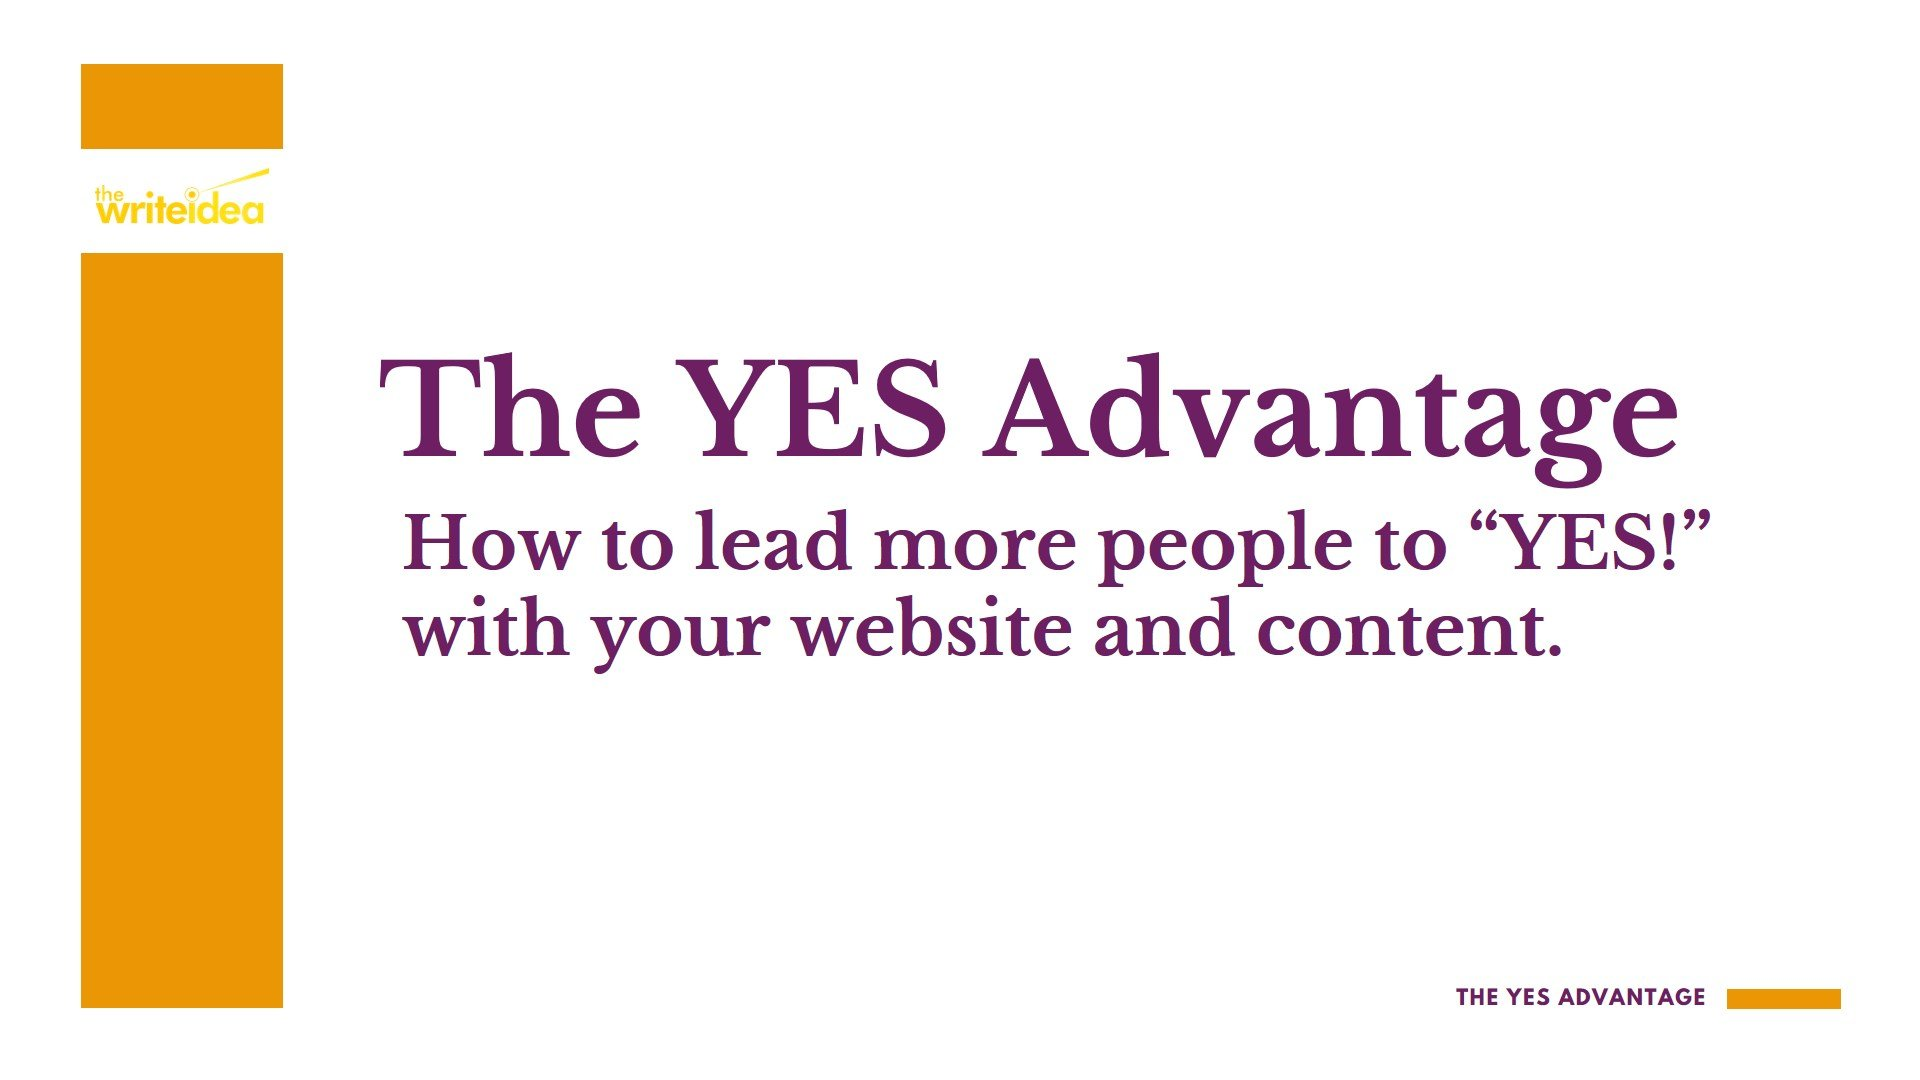 """How to Use Your Website & Content Marketing to Lead People to """"Yes"""""""